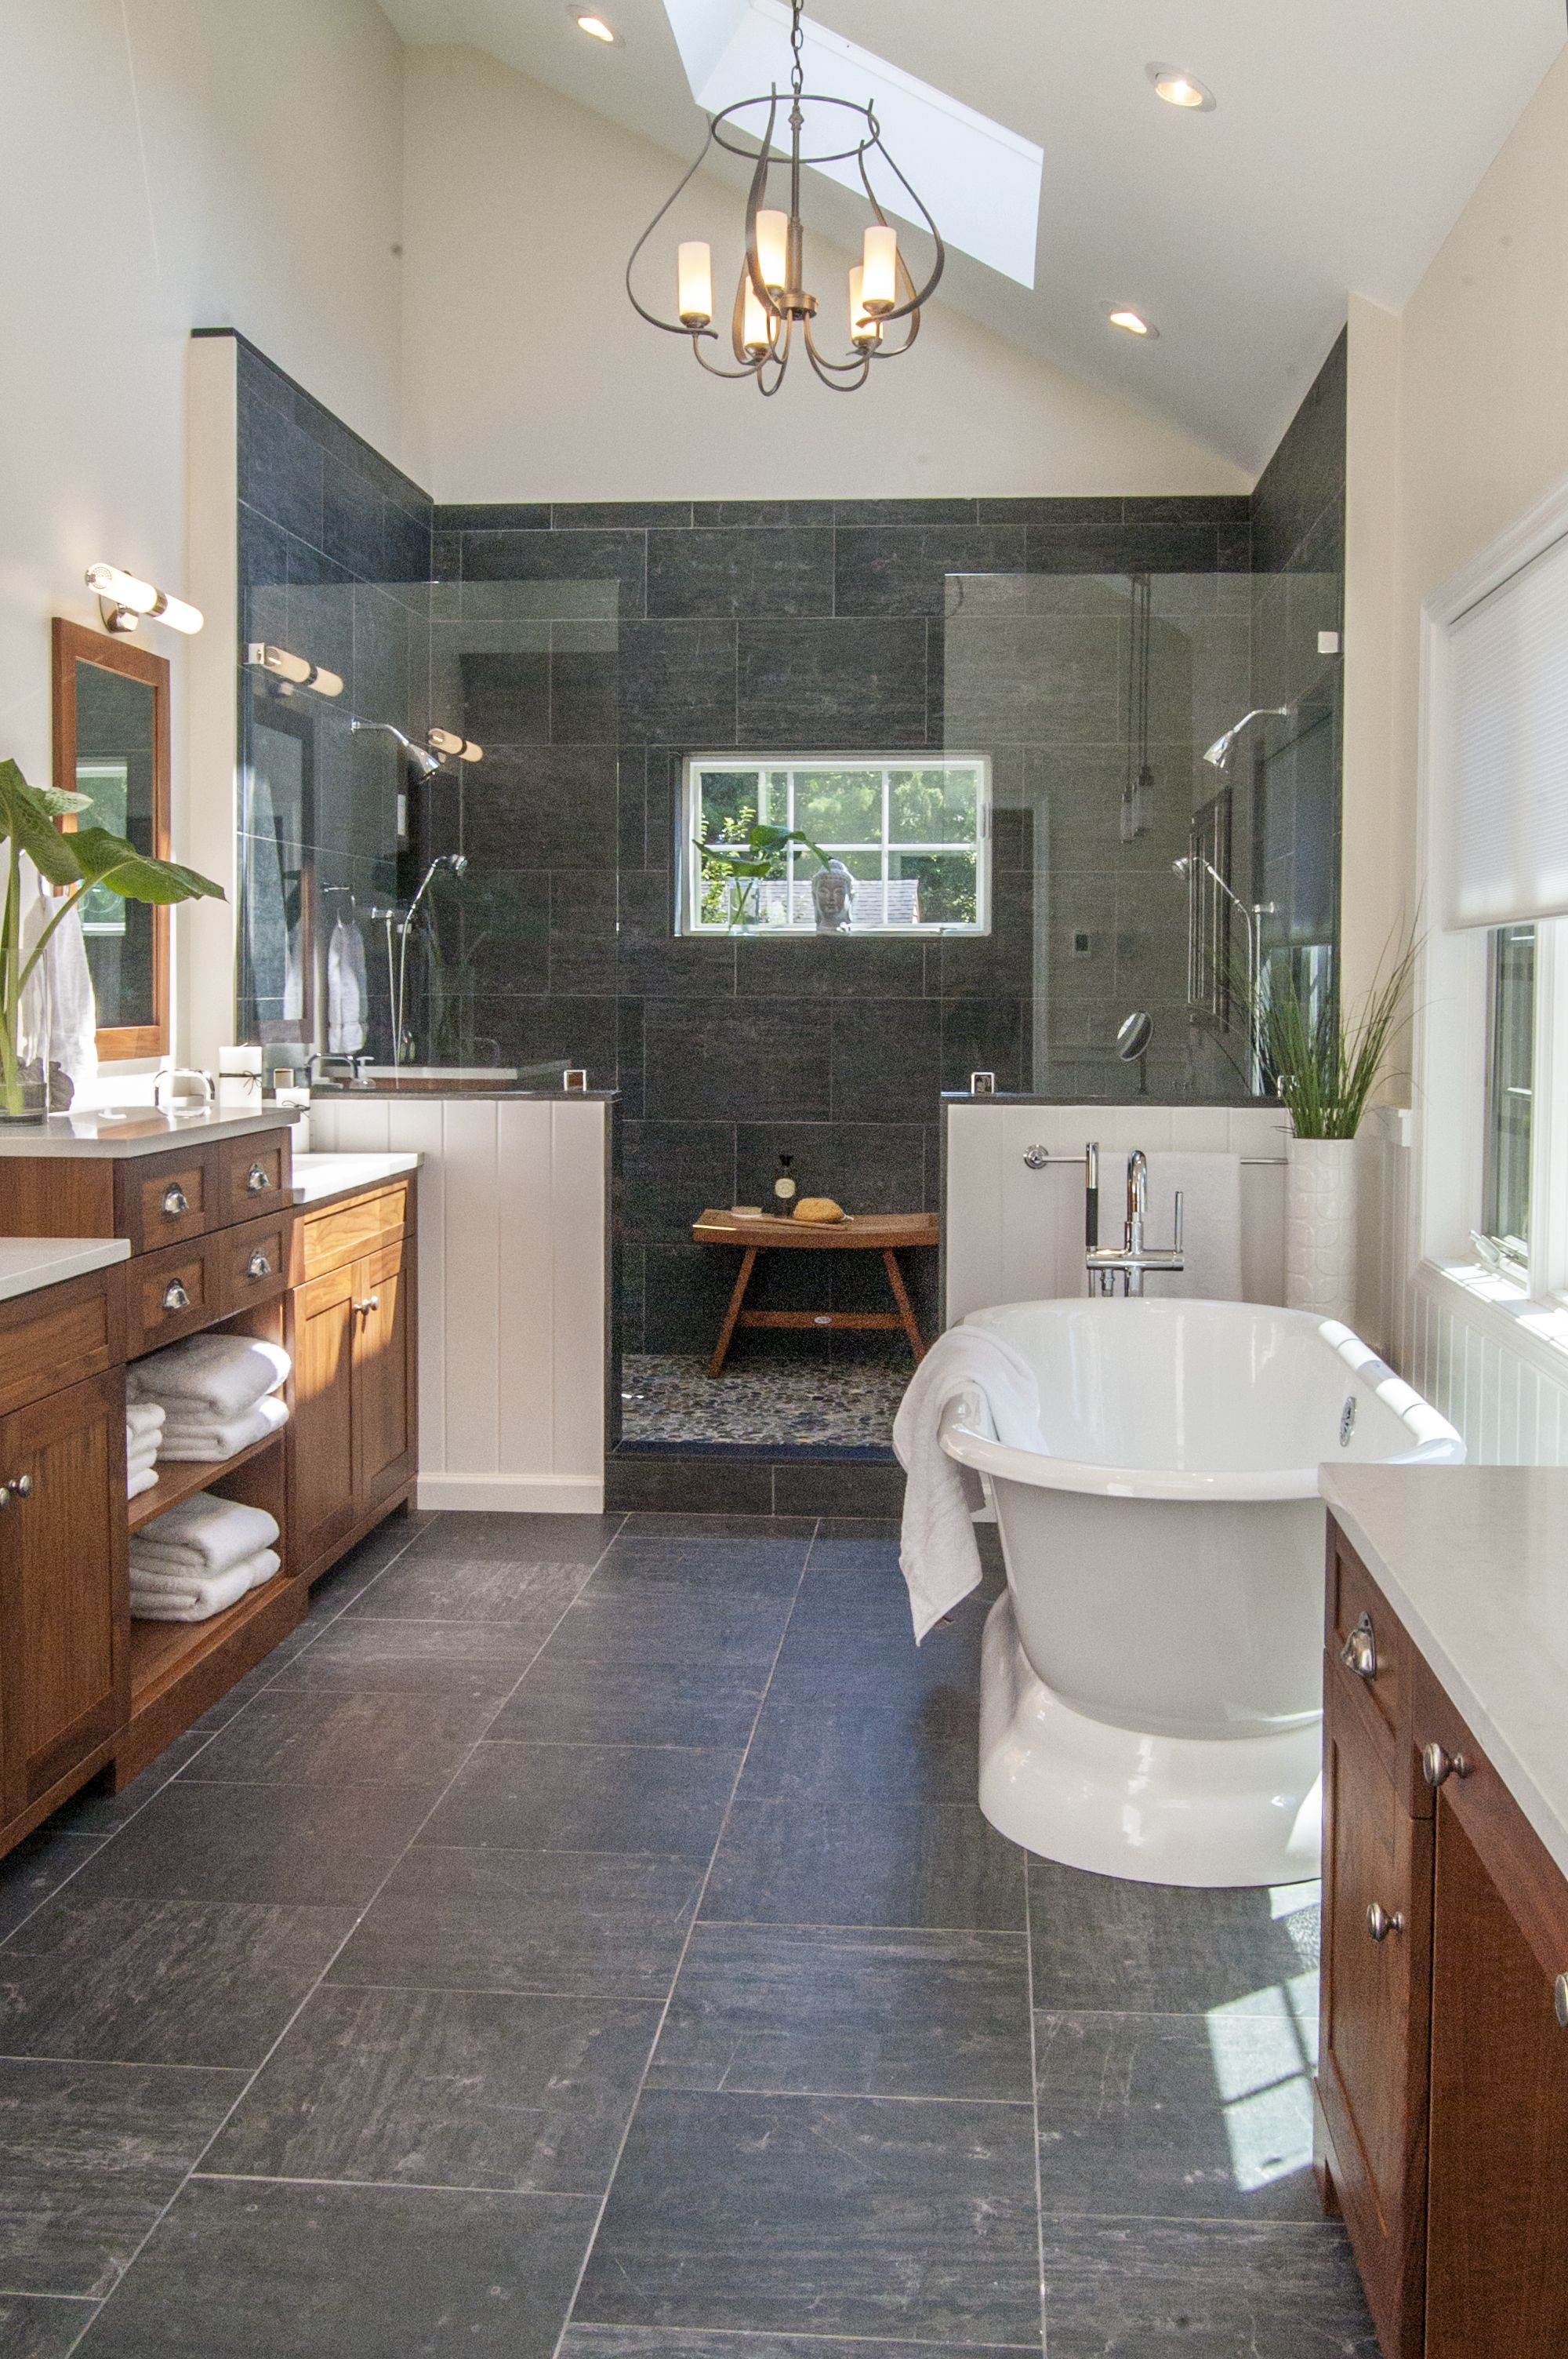 The Gardner Fox Team Reconfigured The Floor Plan To Accommodate A More Spacious Luxurious Bathroom Design Decor Bathroom Remodel Cost Bathroom Remodel Master